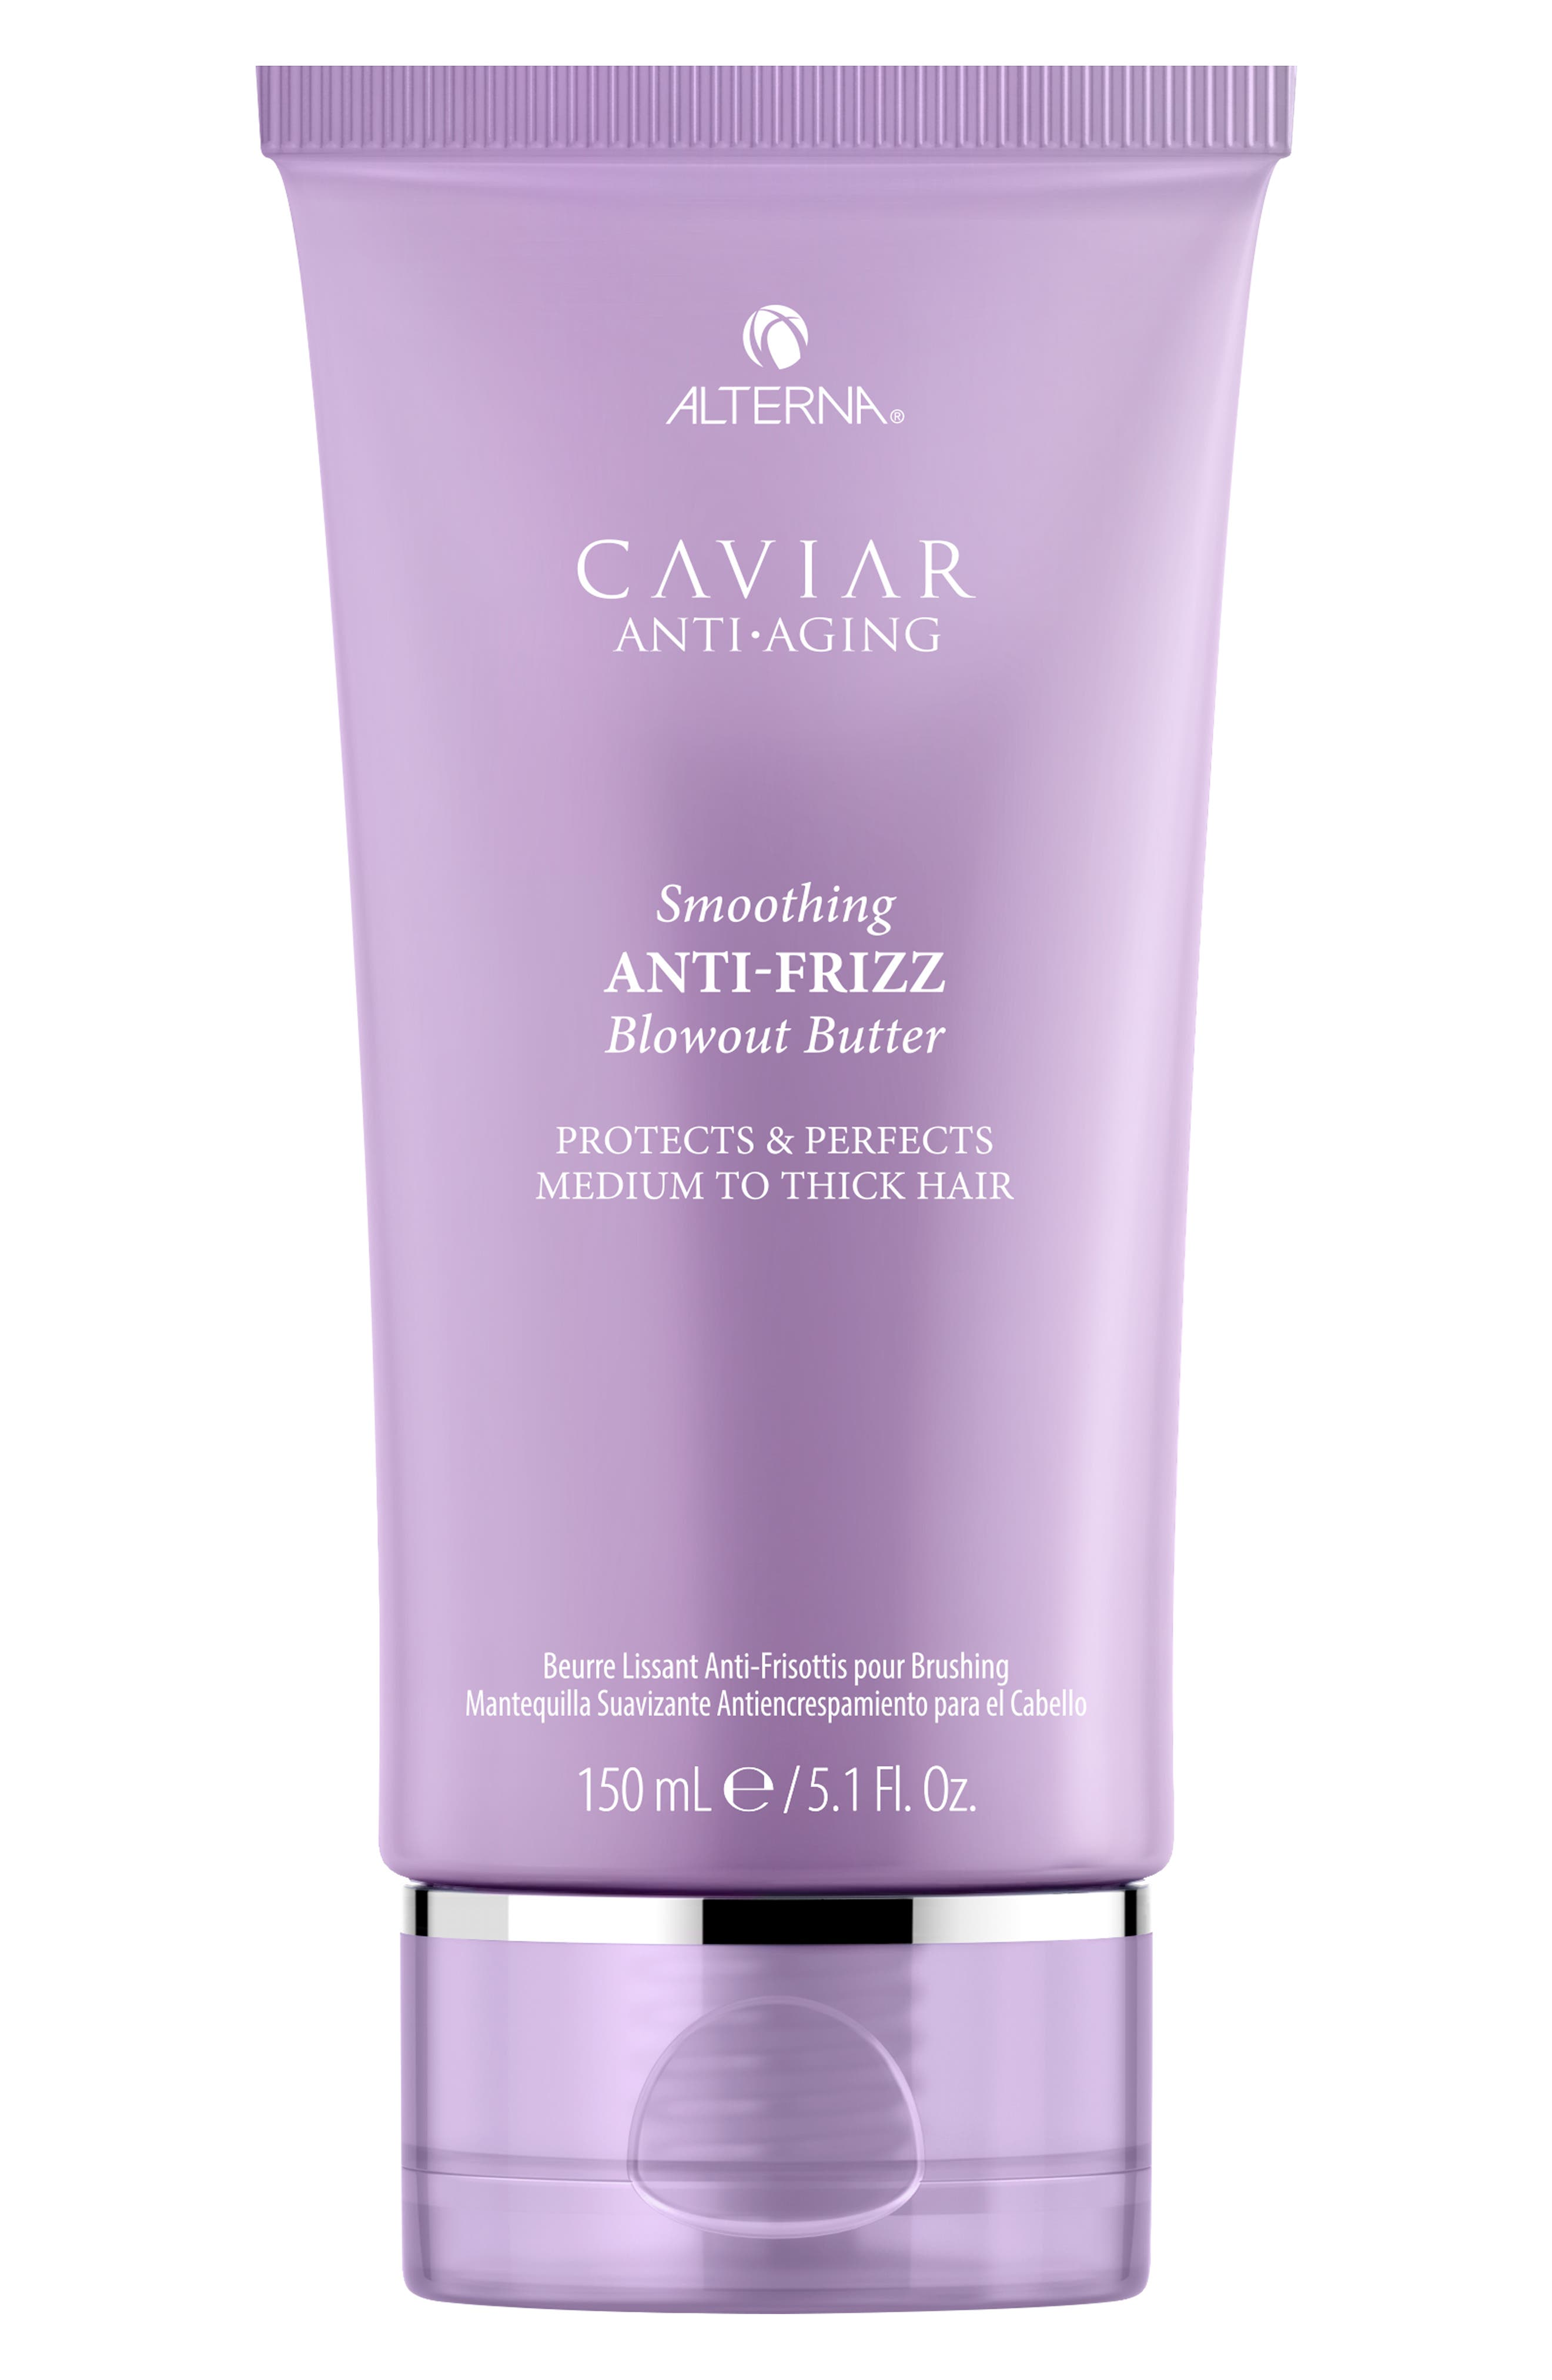 Caviar Anti-Aging Smoothing Anti-Frizz Blowout Butter,                             Main thumbnail 1, color,                             NO COLOR